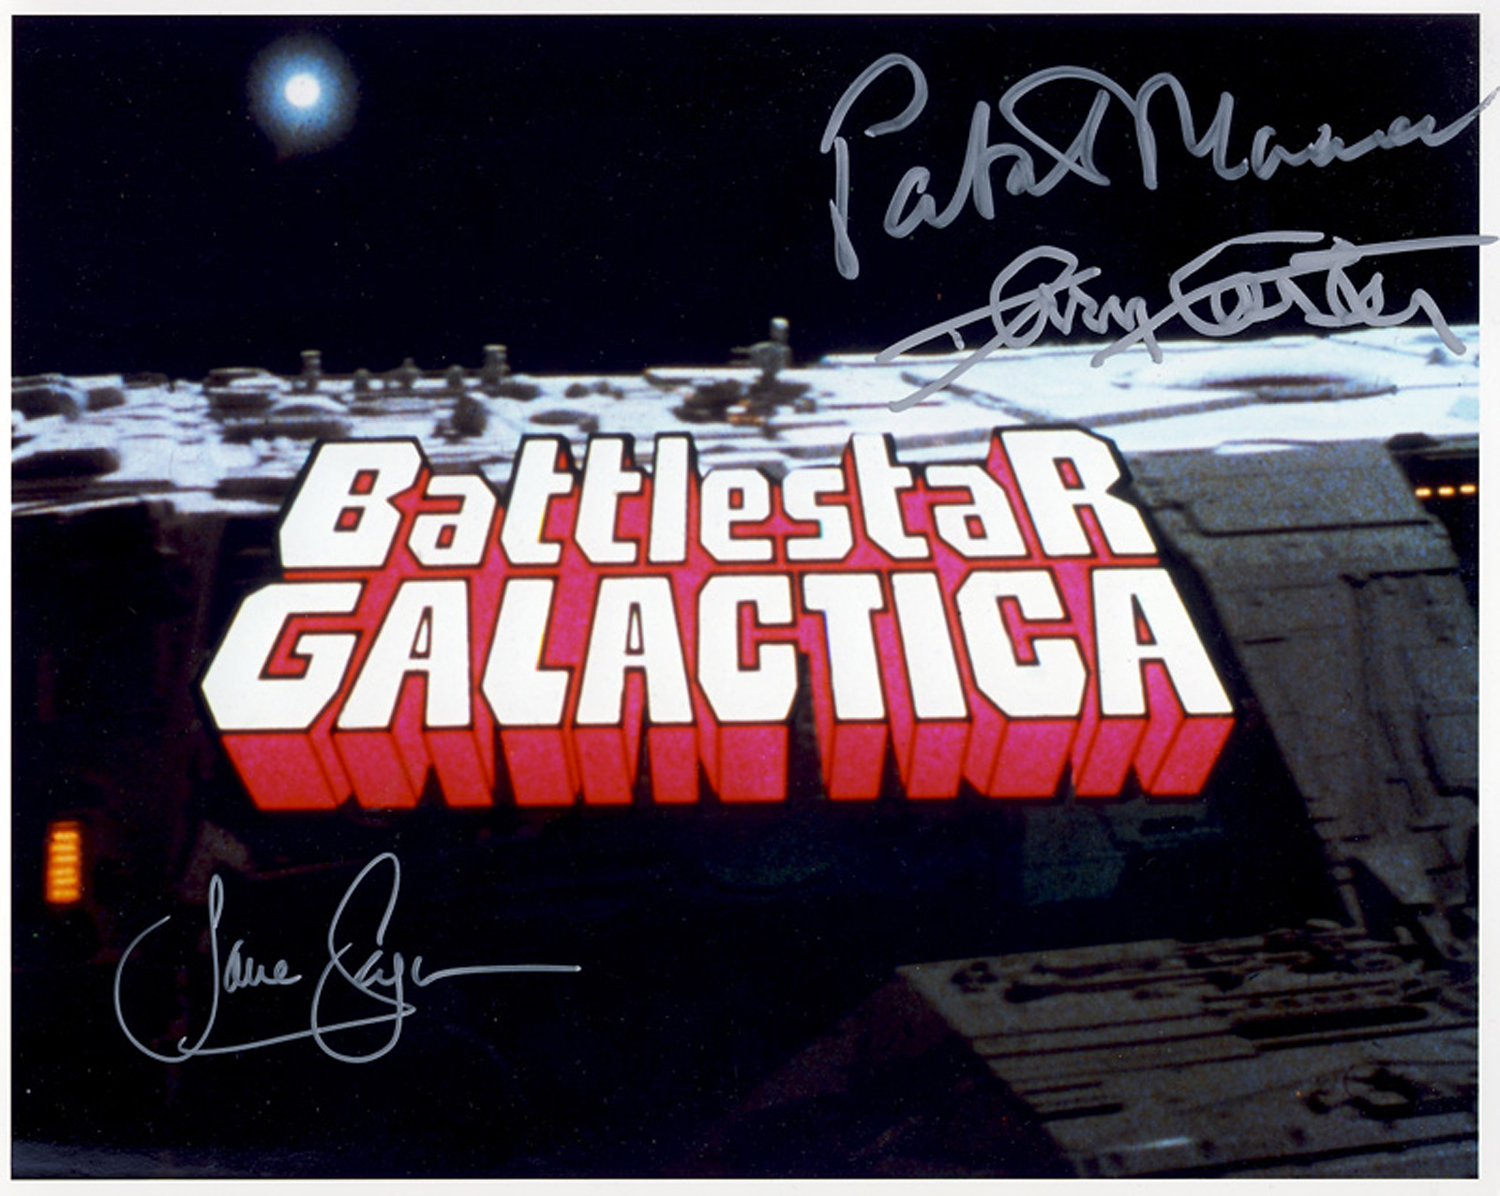 EXTREMELY RARE! Battlestar Galactica 1978 triple signed photo. This beautiful hand signed 10x8 photo